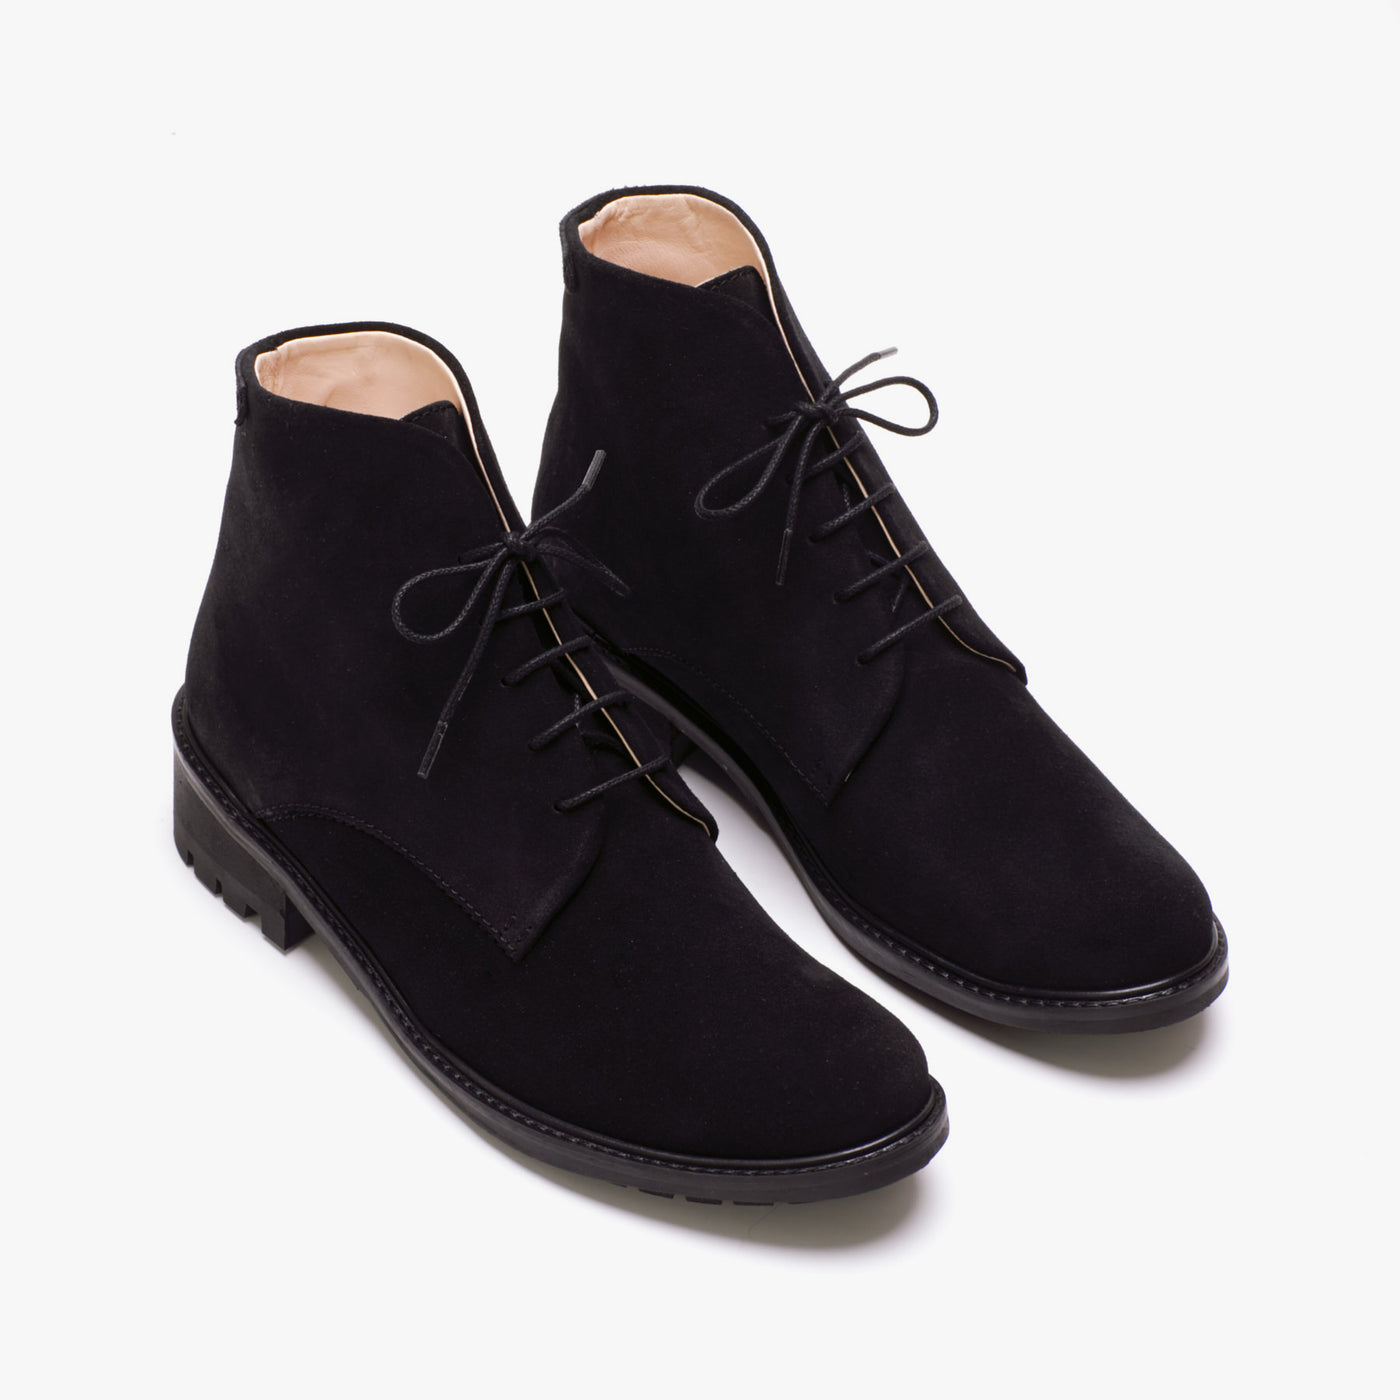 OLA SUEDE BOOT BLACK